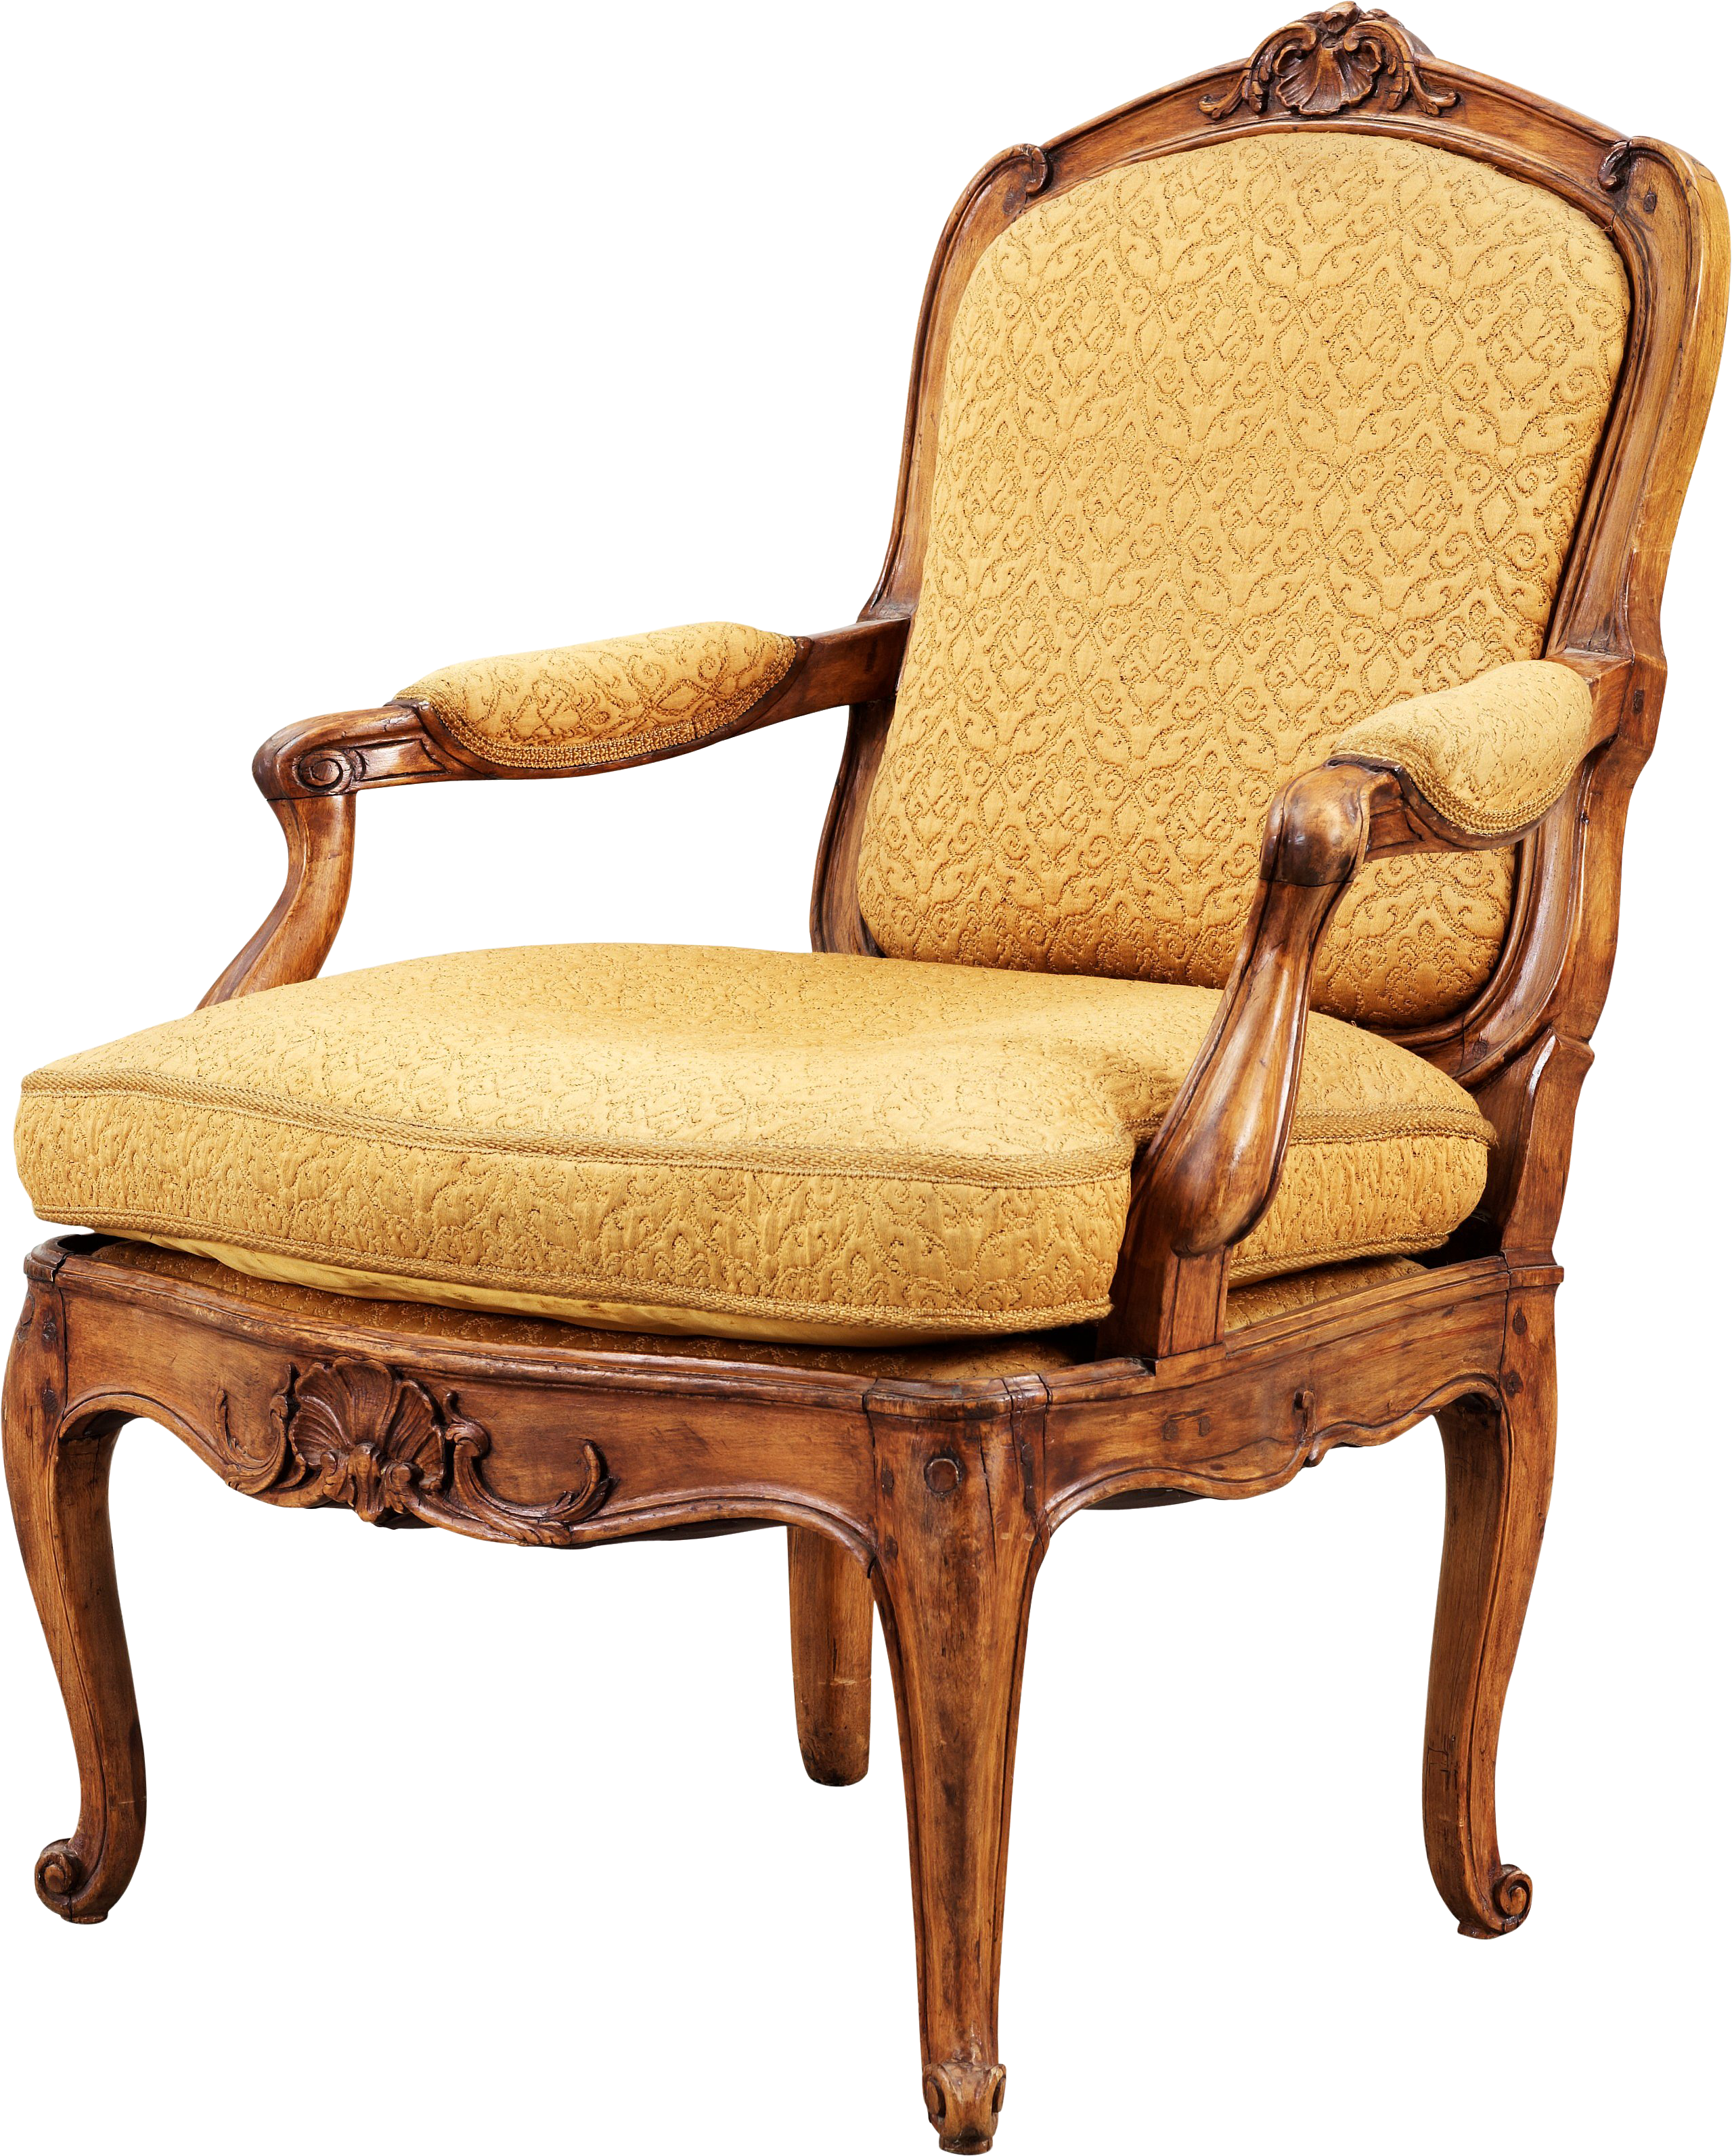 Armchair PNG image - Armchair HD PNG